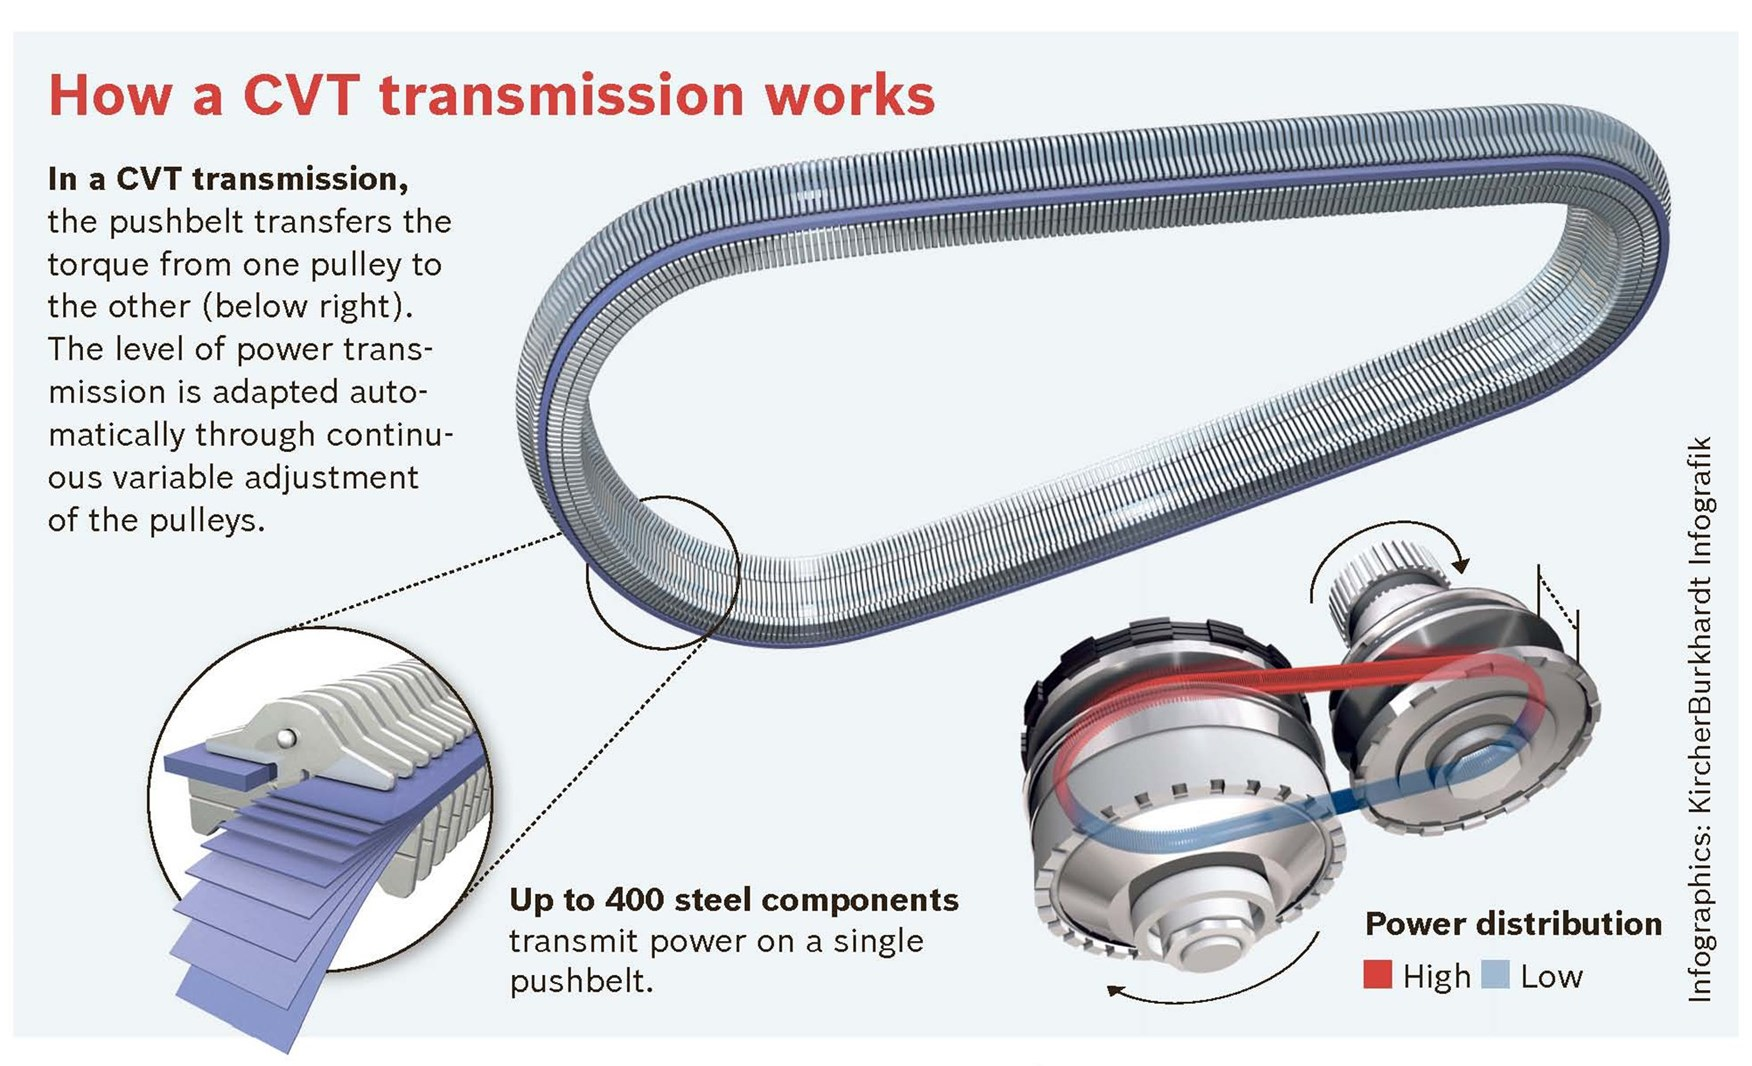 What is a CVT (continuously variable transmission)?